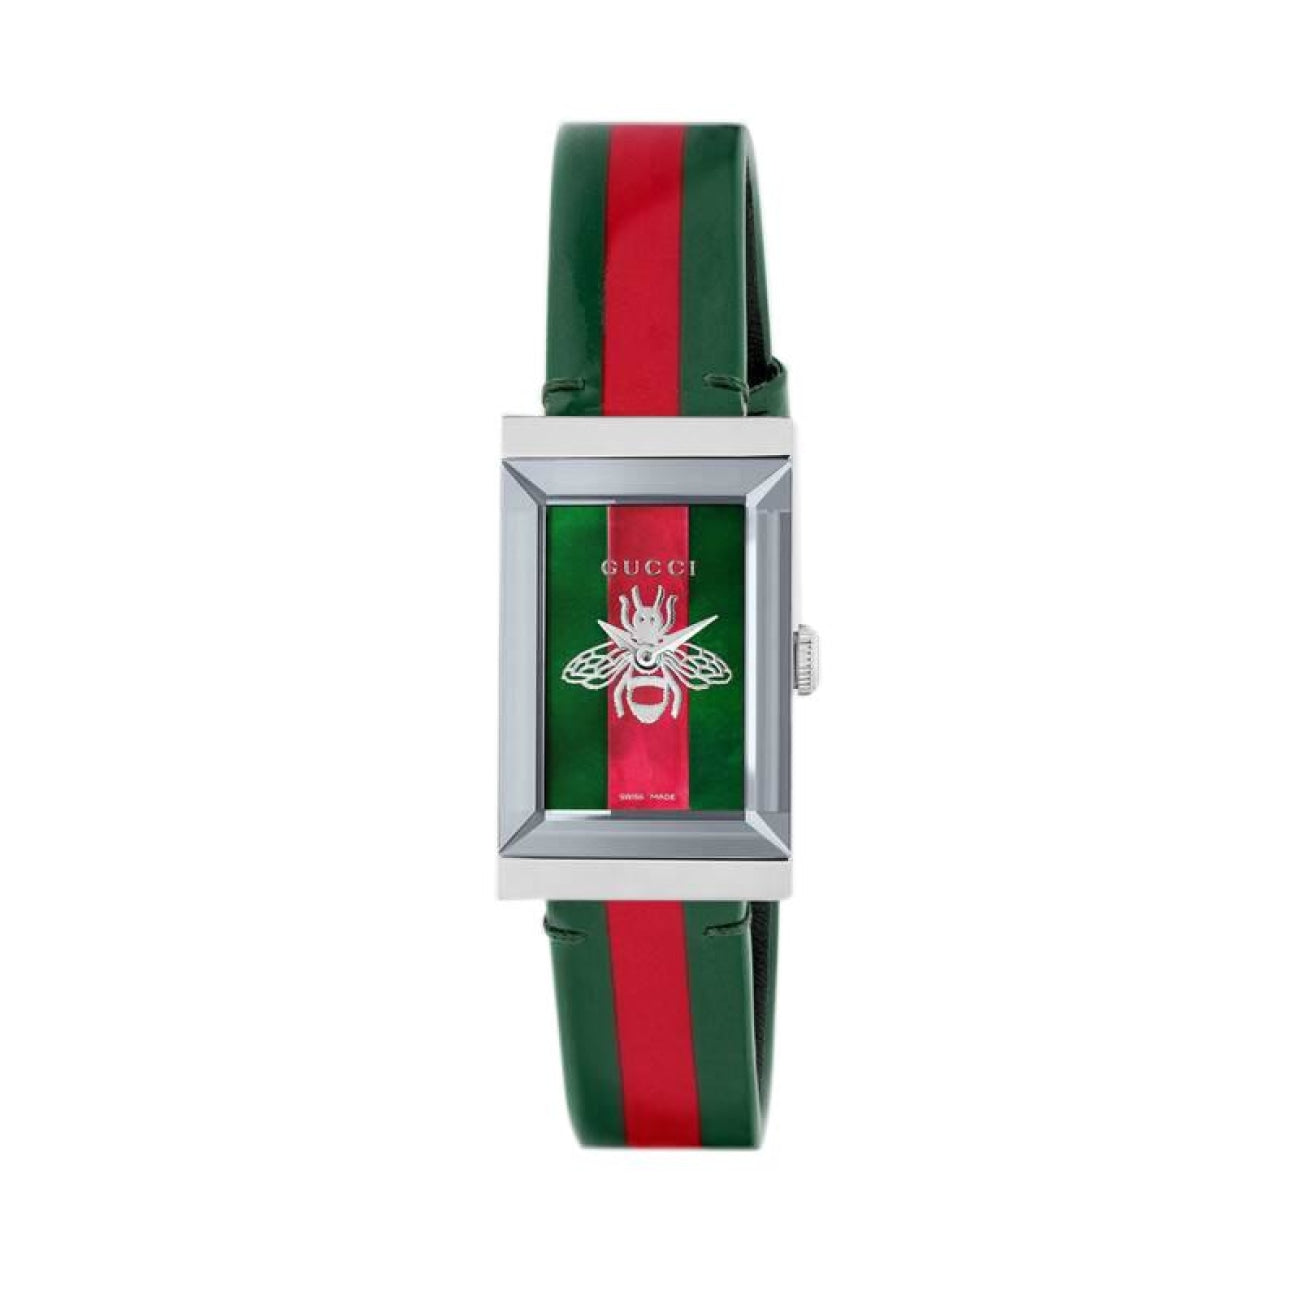 Gucci Watches - G-Frame watch 21x34mm | Manfredi Jewels